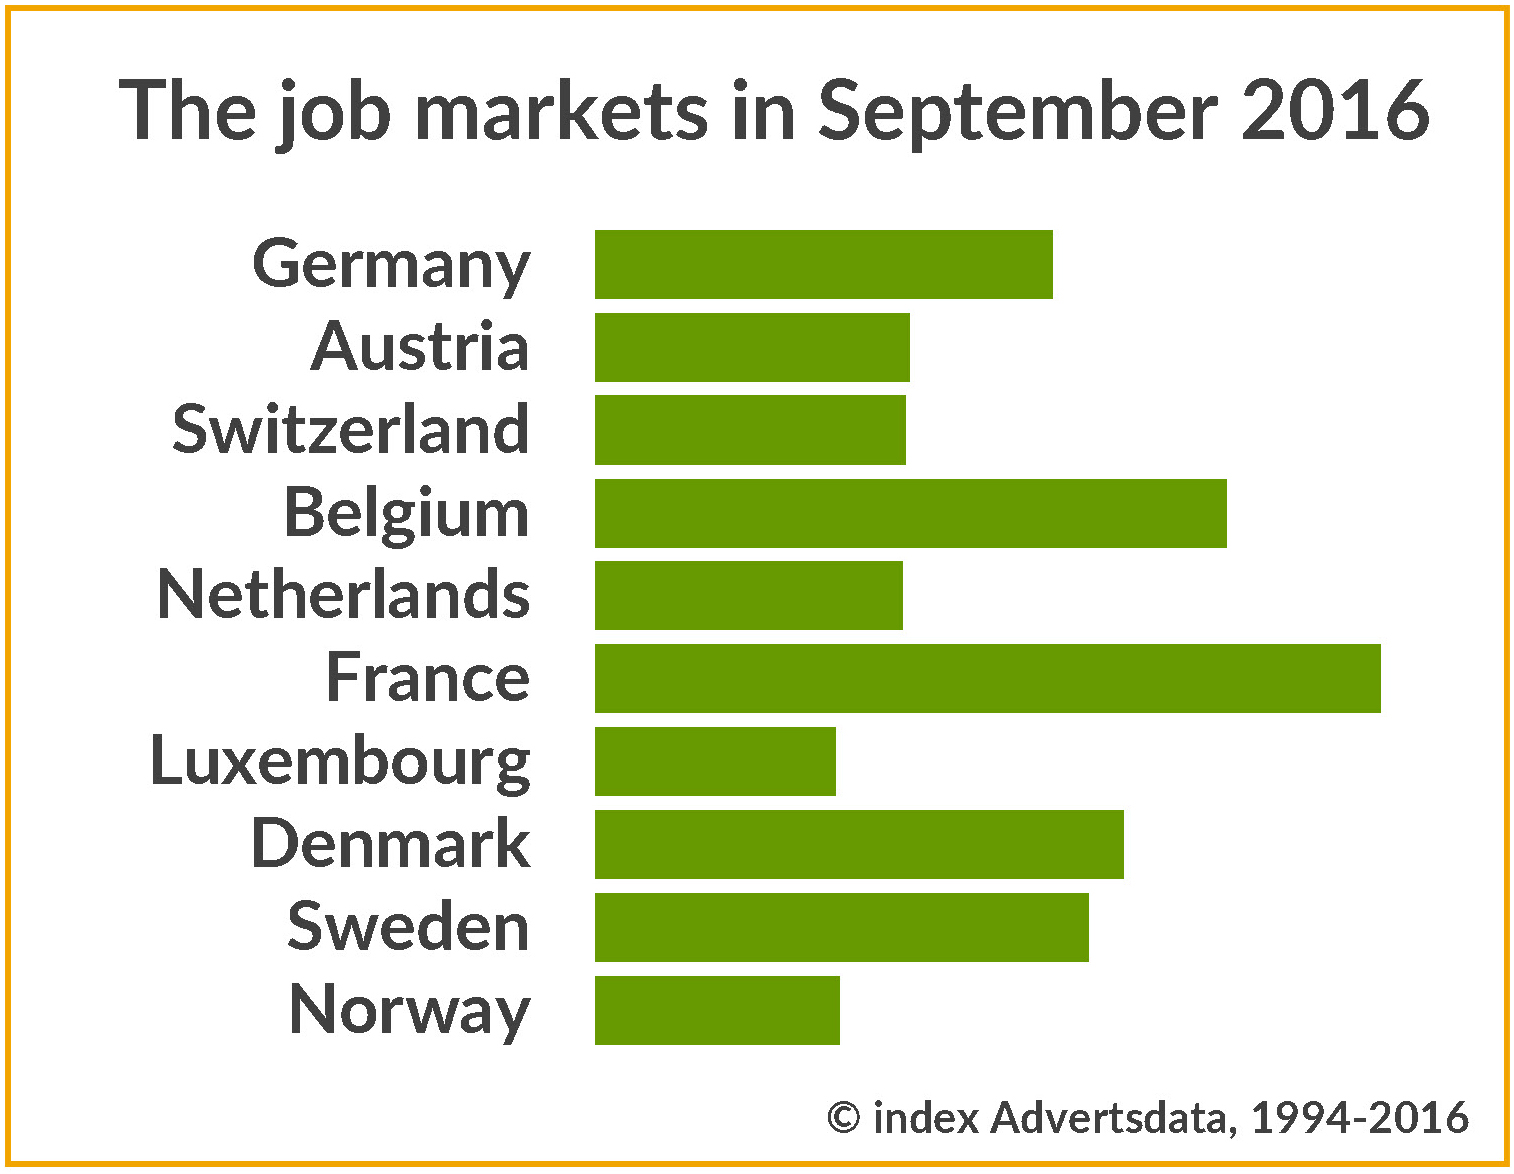 Development of the job markets